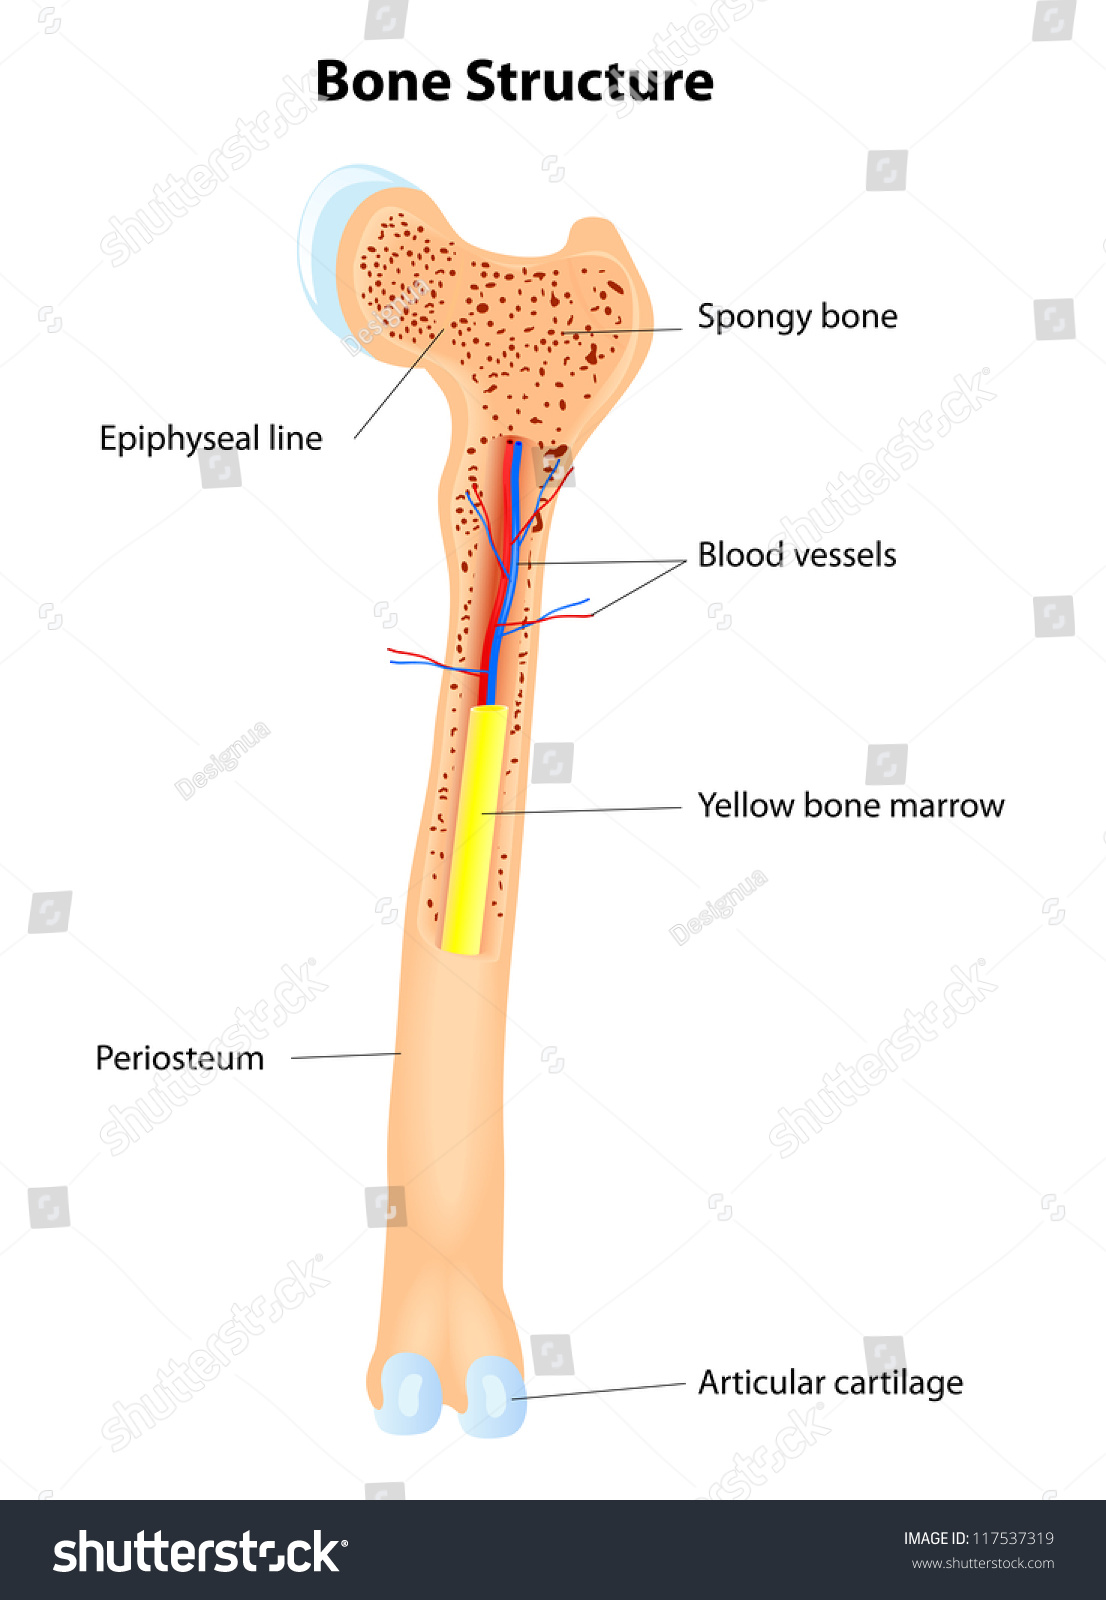 Long Bone Anatomy Vector Scheme Stock Vector 117537319 - Shutterstock